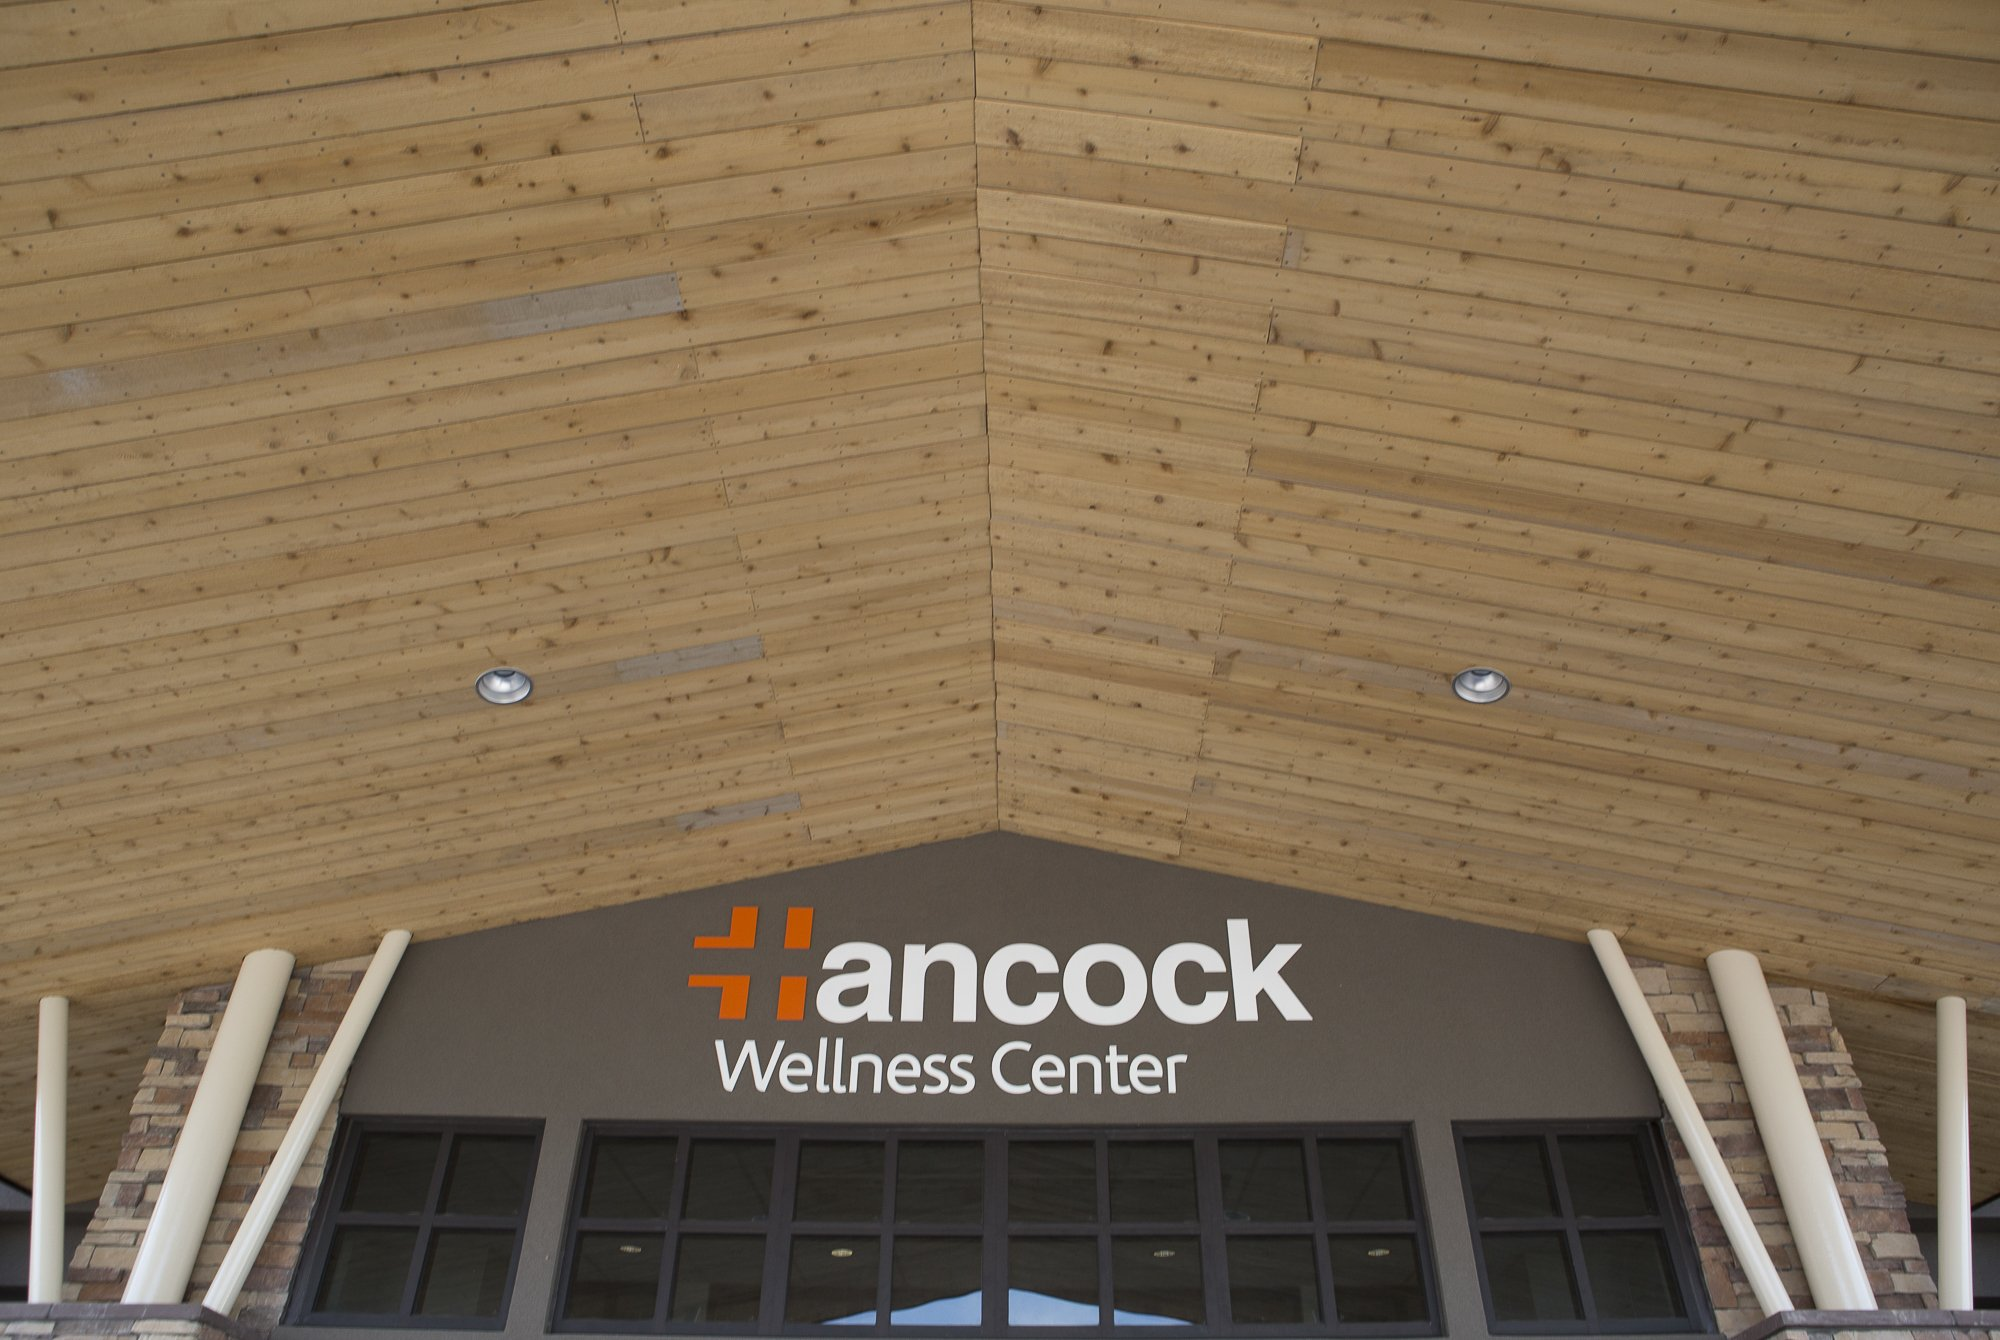 Hancock Wellness Center - McCordsville Indiana - Commercial Photography Session - 28